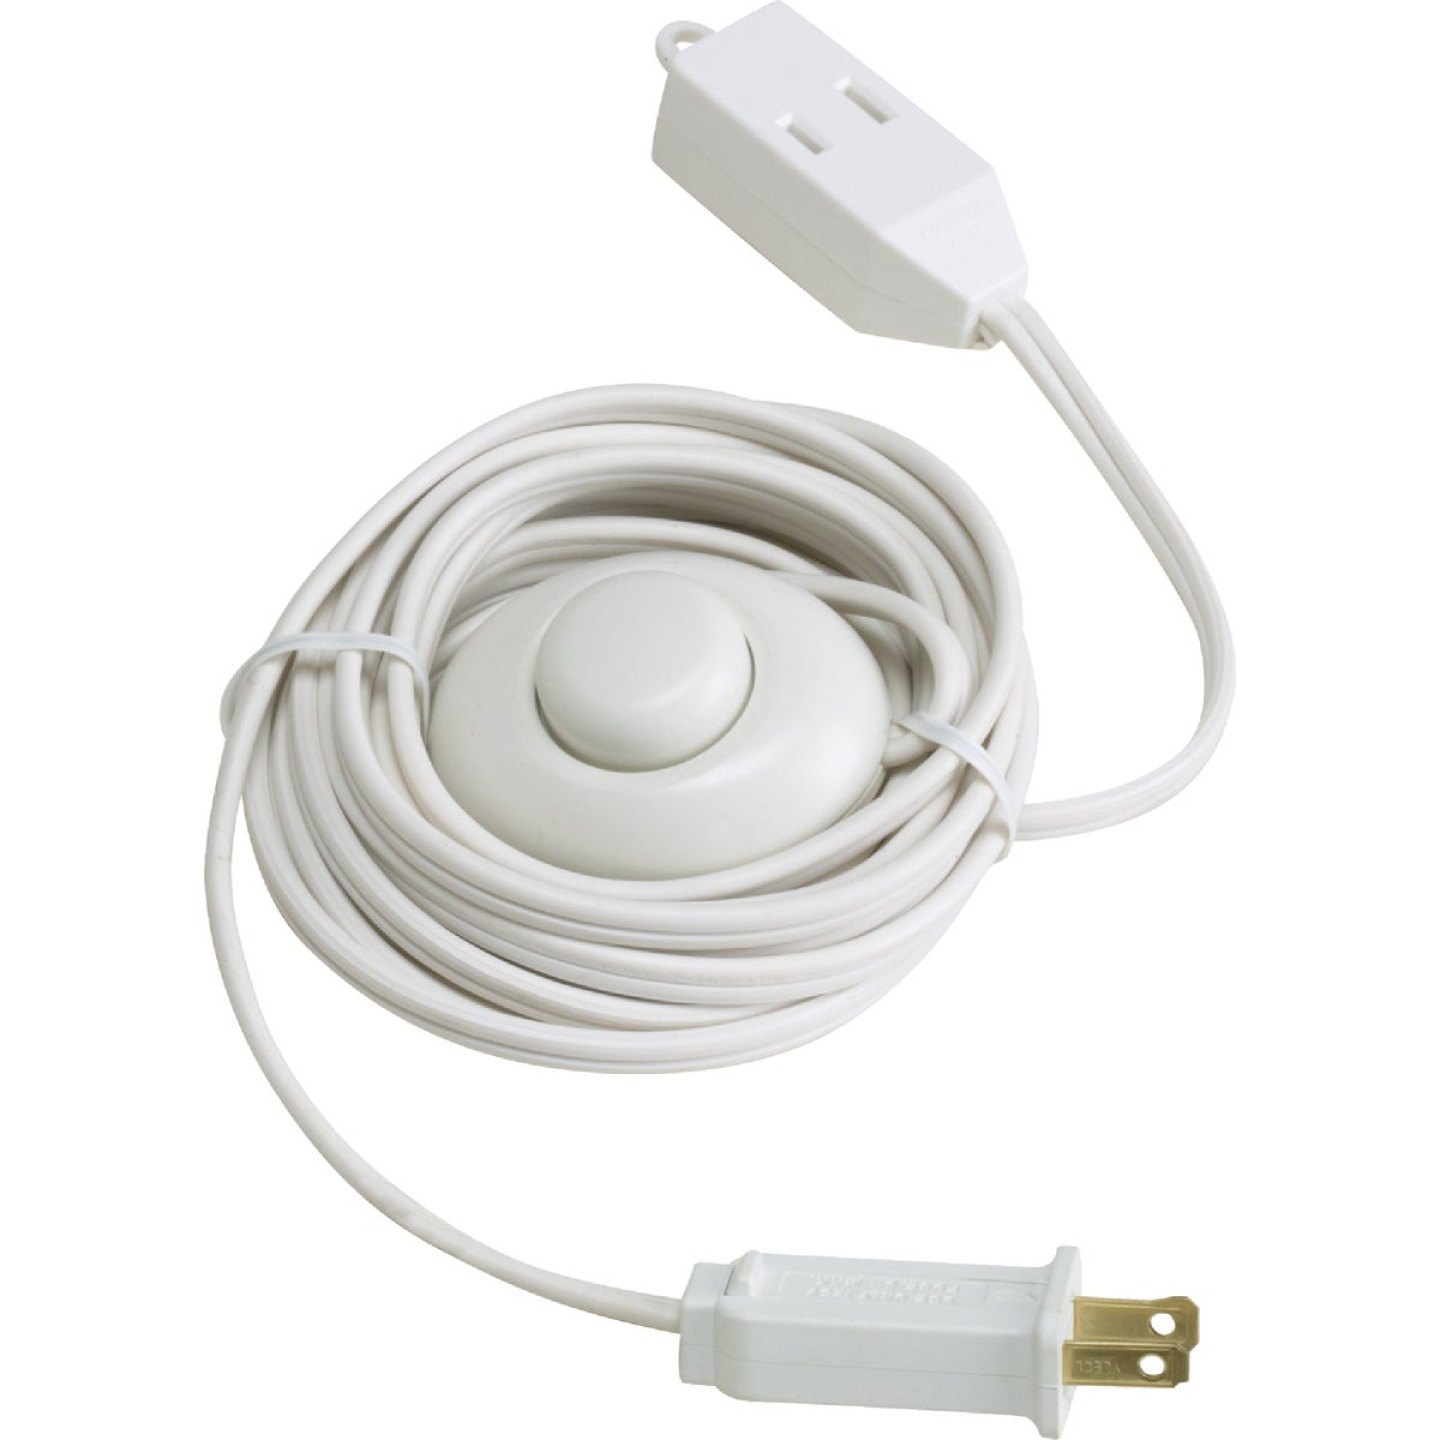 Do it 15 Ft. 18/2 White Extension Cord with Foot Switch Image 1